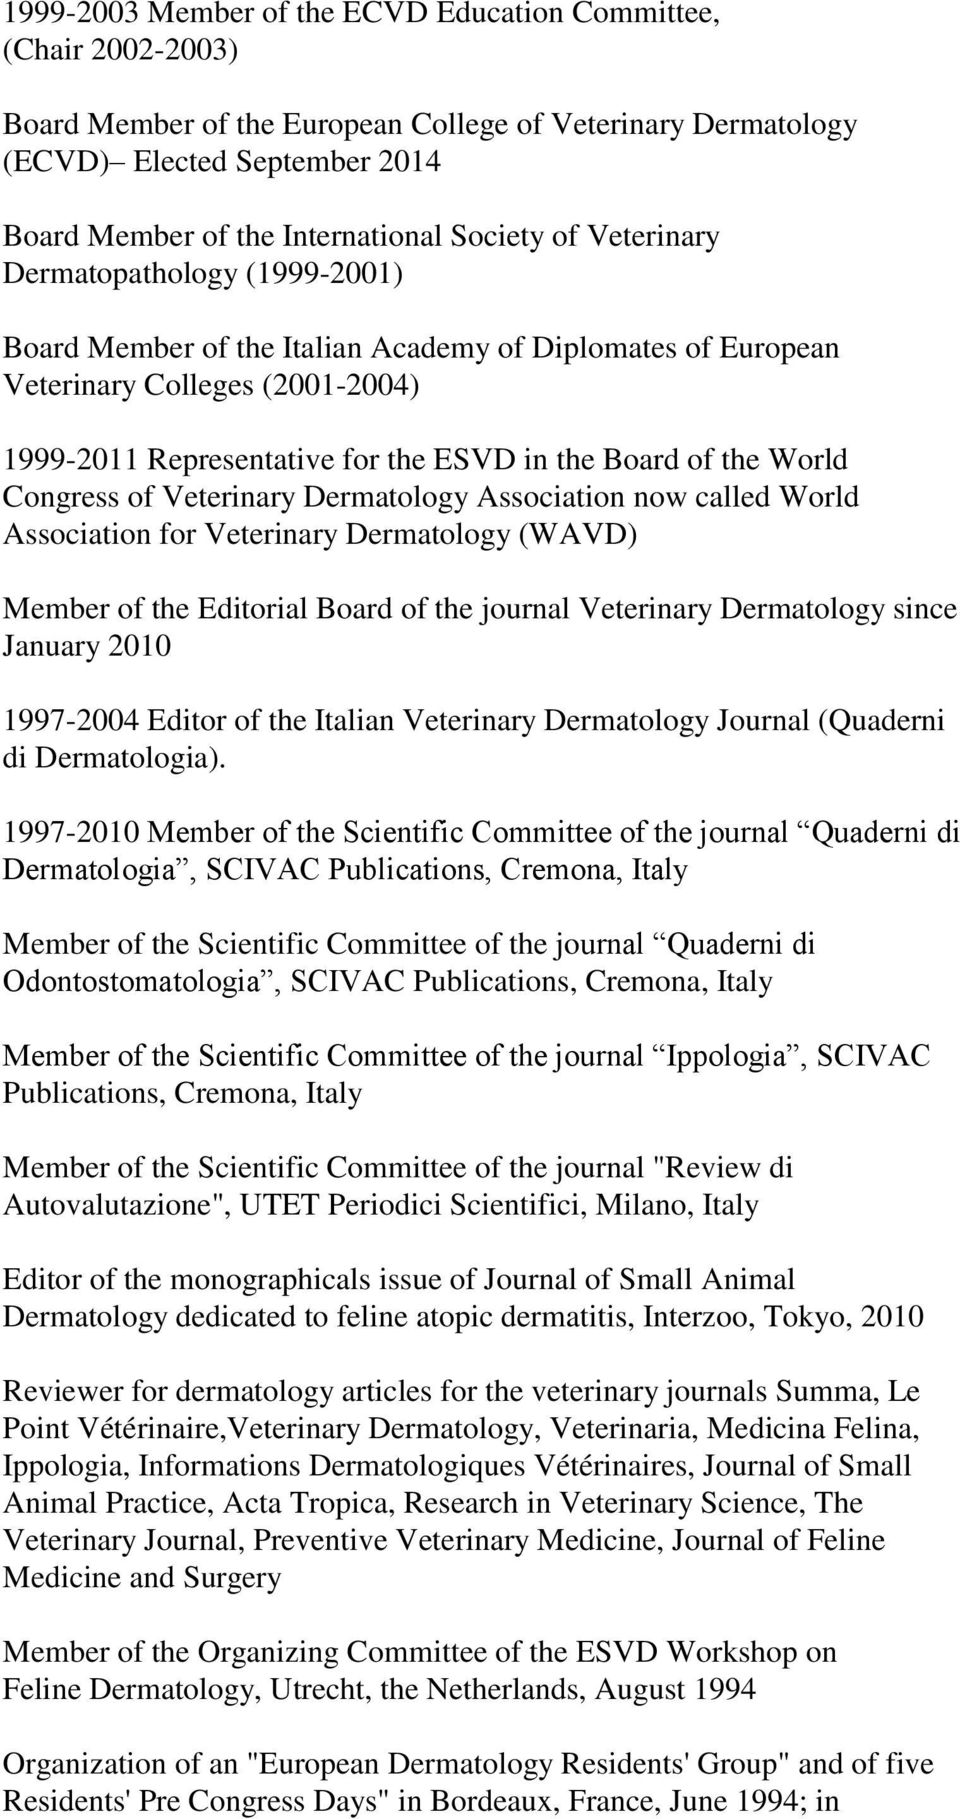 the World Congress of Veterinary Dermatology Association now called World Association for Veterinary Dermatology (WAVD) Member of the Editorial Board of the journal Veterinary Dermatology since